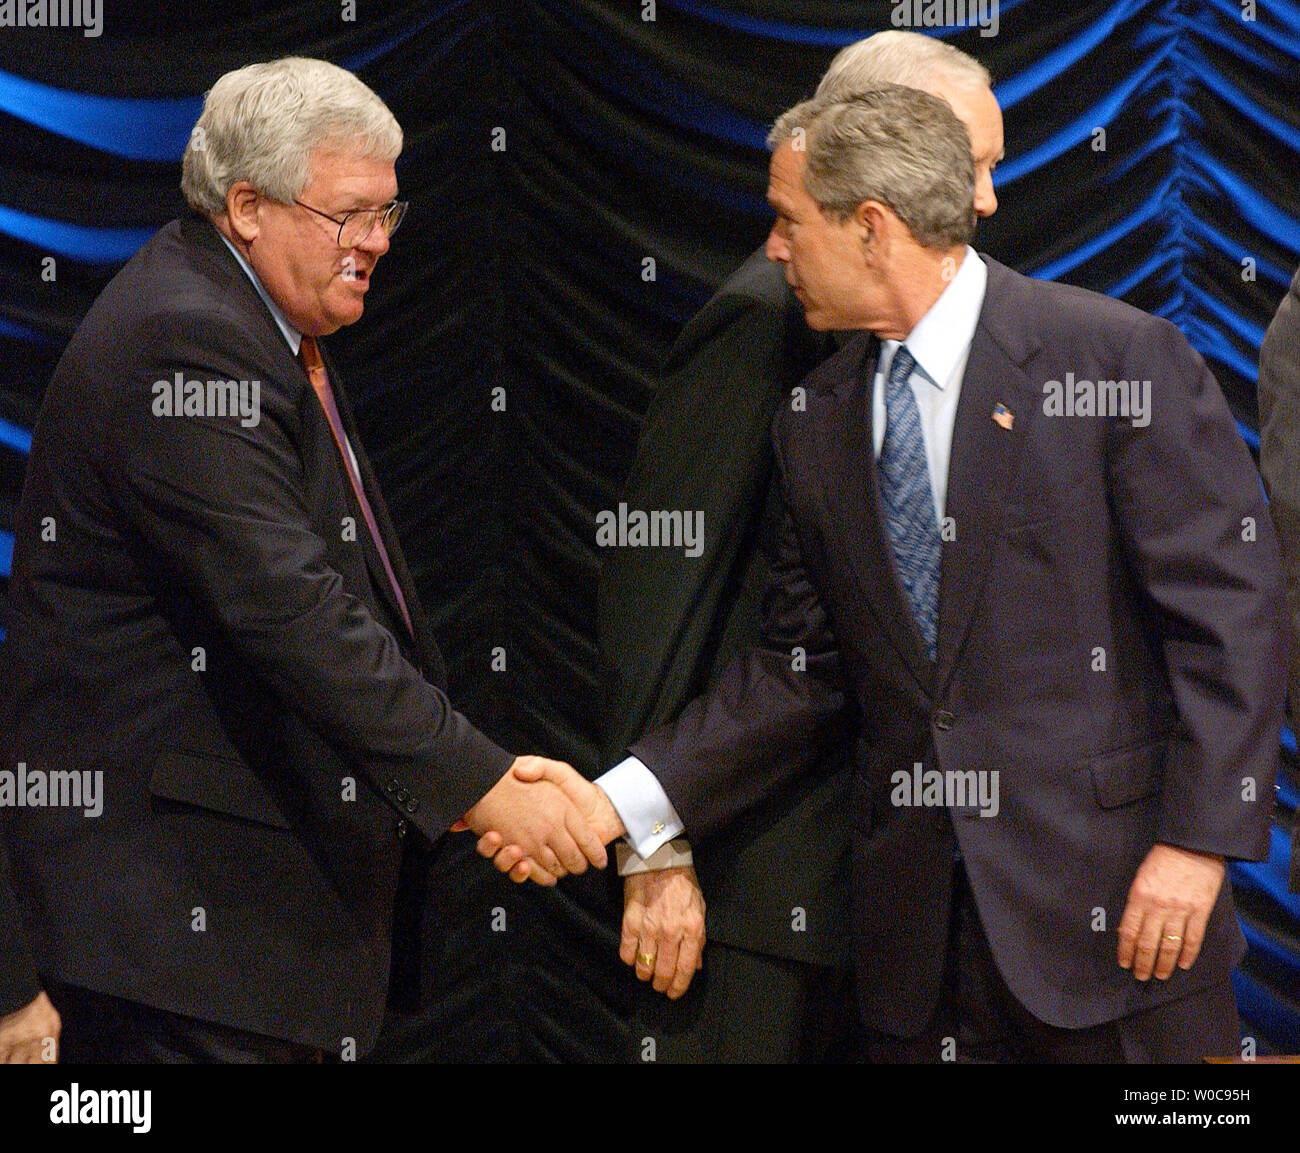 President George W. Bush, right, shakes hands with House Speaker Dennis Hastert, R-IL, before signing a bill banning partial birth abortions on November 5, 2003, in Washington. Behind President Bush is Sen. Orrin Hatch, R-UT. (UPI/Roger L. Wollenberg) Stock Photo